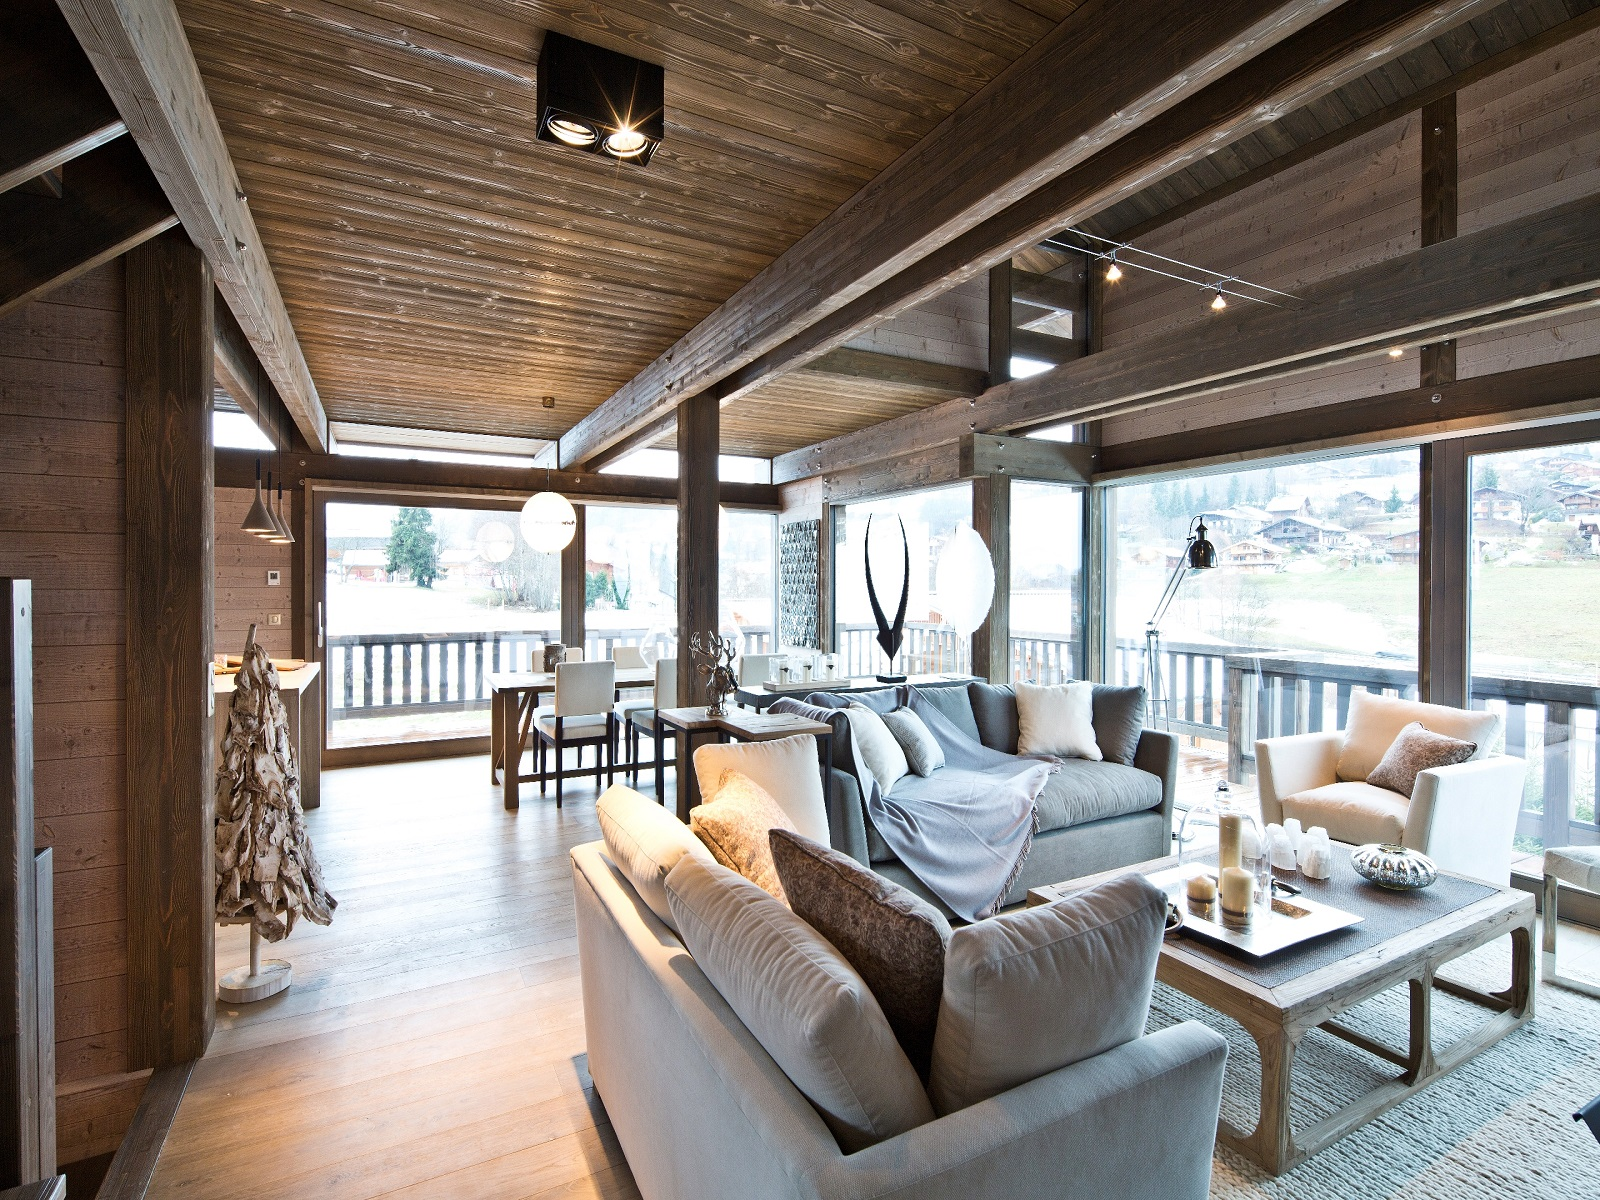 Single Family Home for Sale at Chalet EBENE Megeve, Rhone-Alpes 74120 France